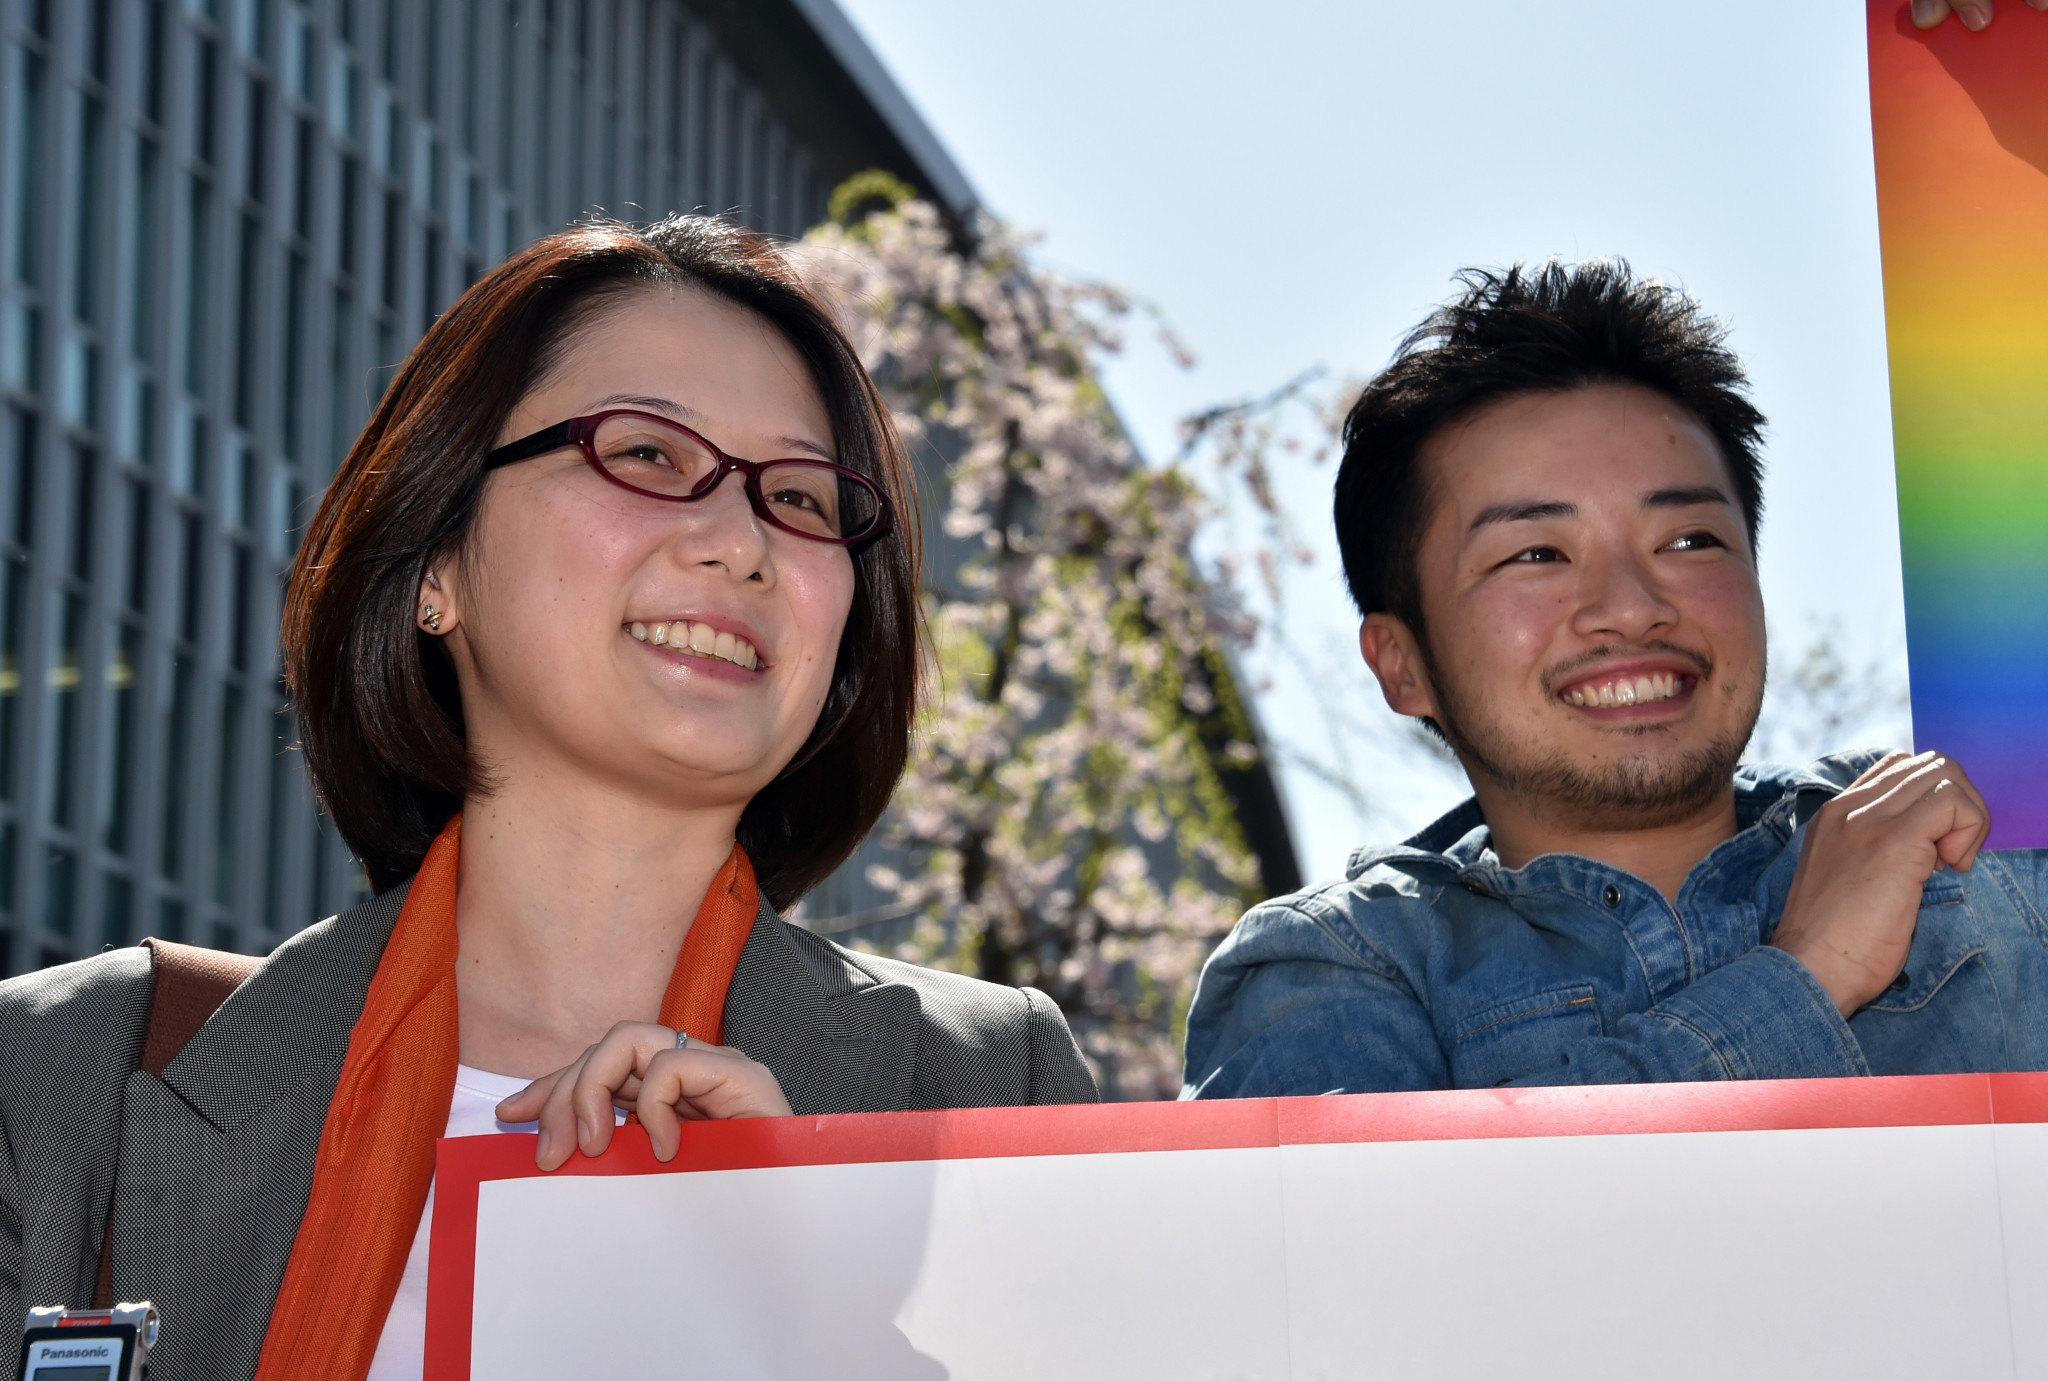 Japanese Olympic Committee names first transgender person to Board